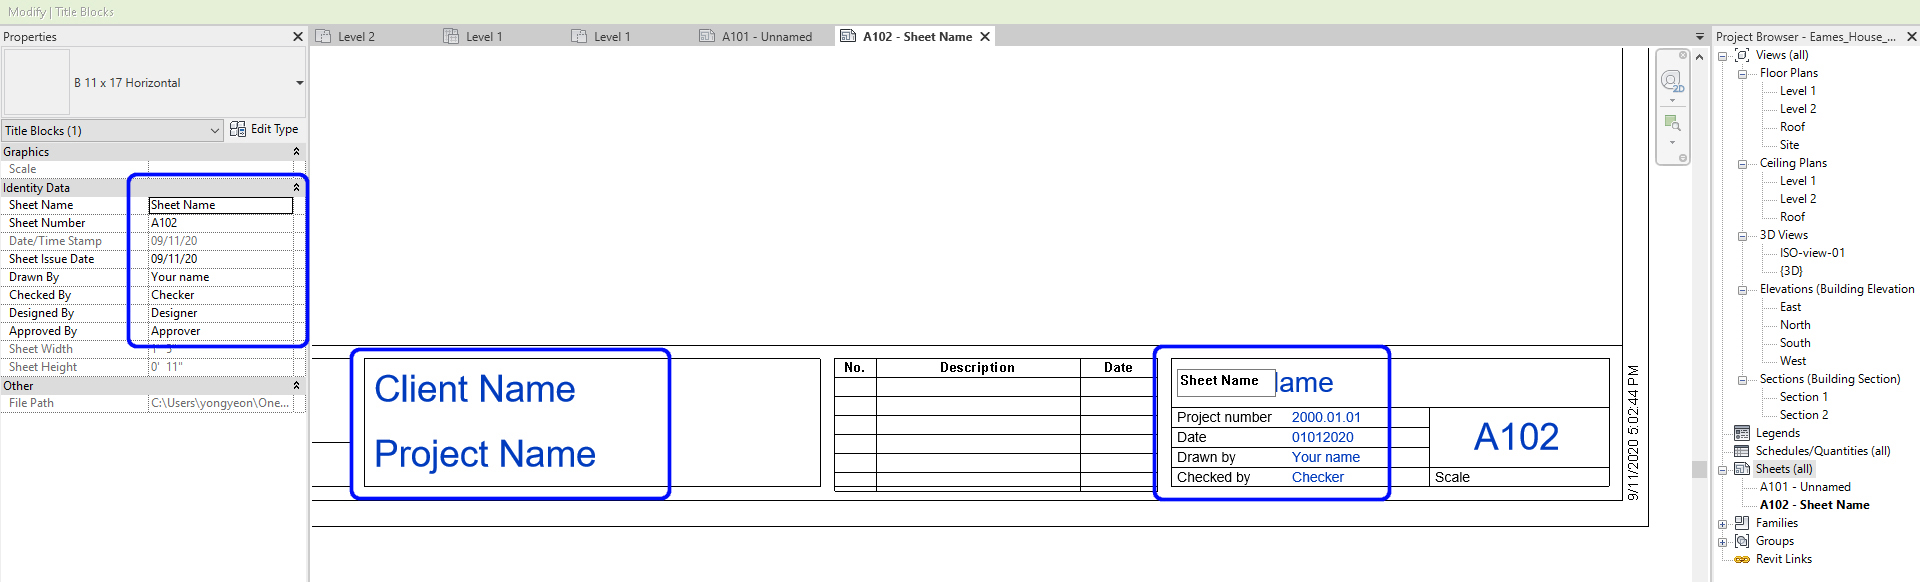 It indicates what to update for the sheet information.